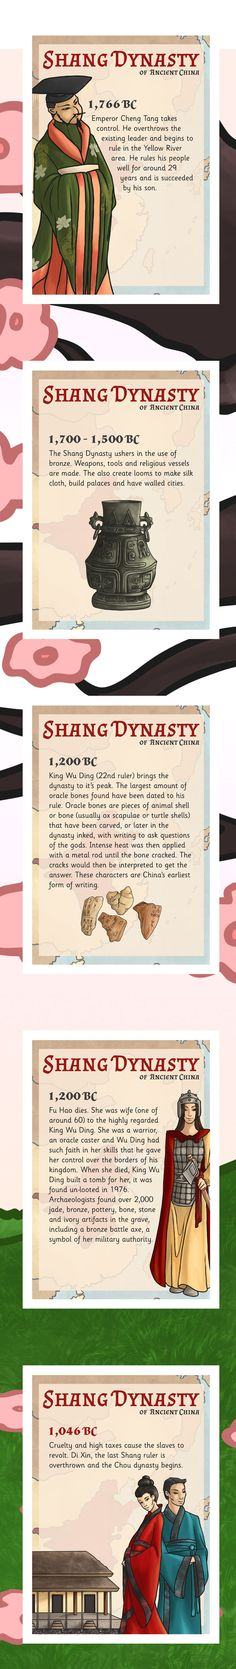 KS2 History Timelines- The Shang Dynasty of China Timeline Posters